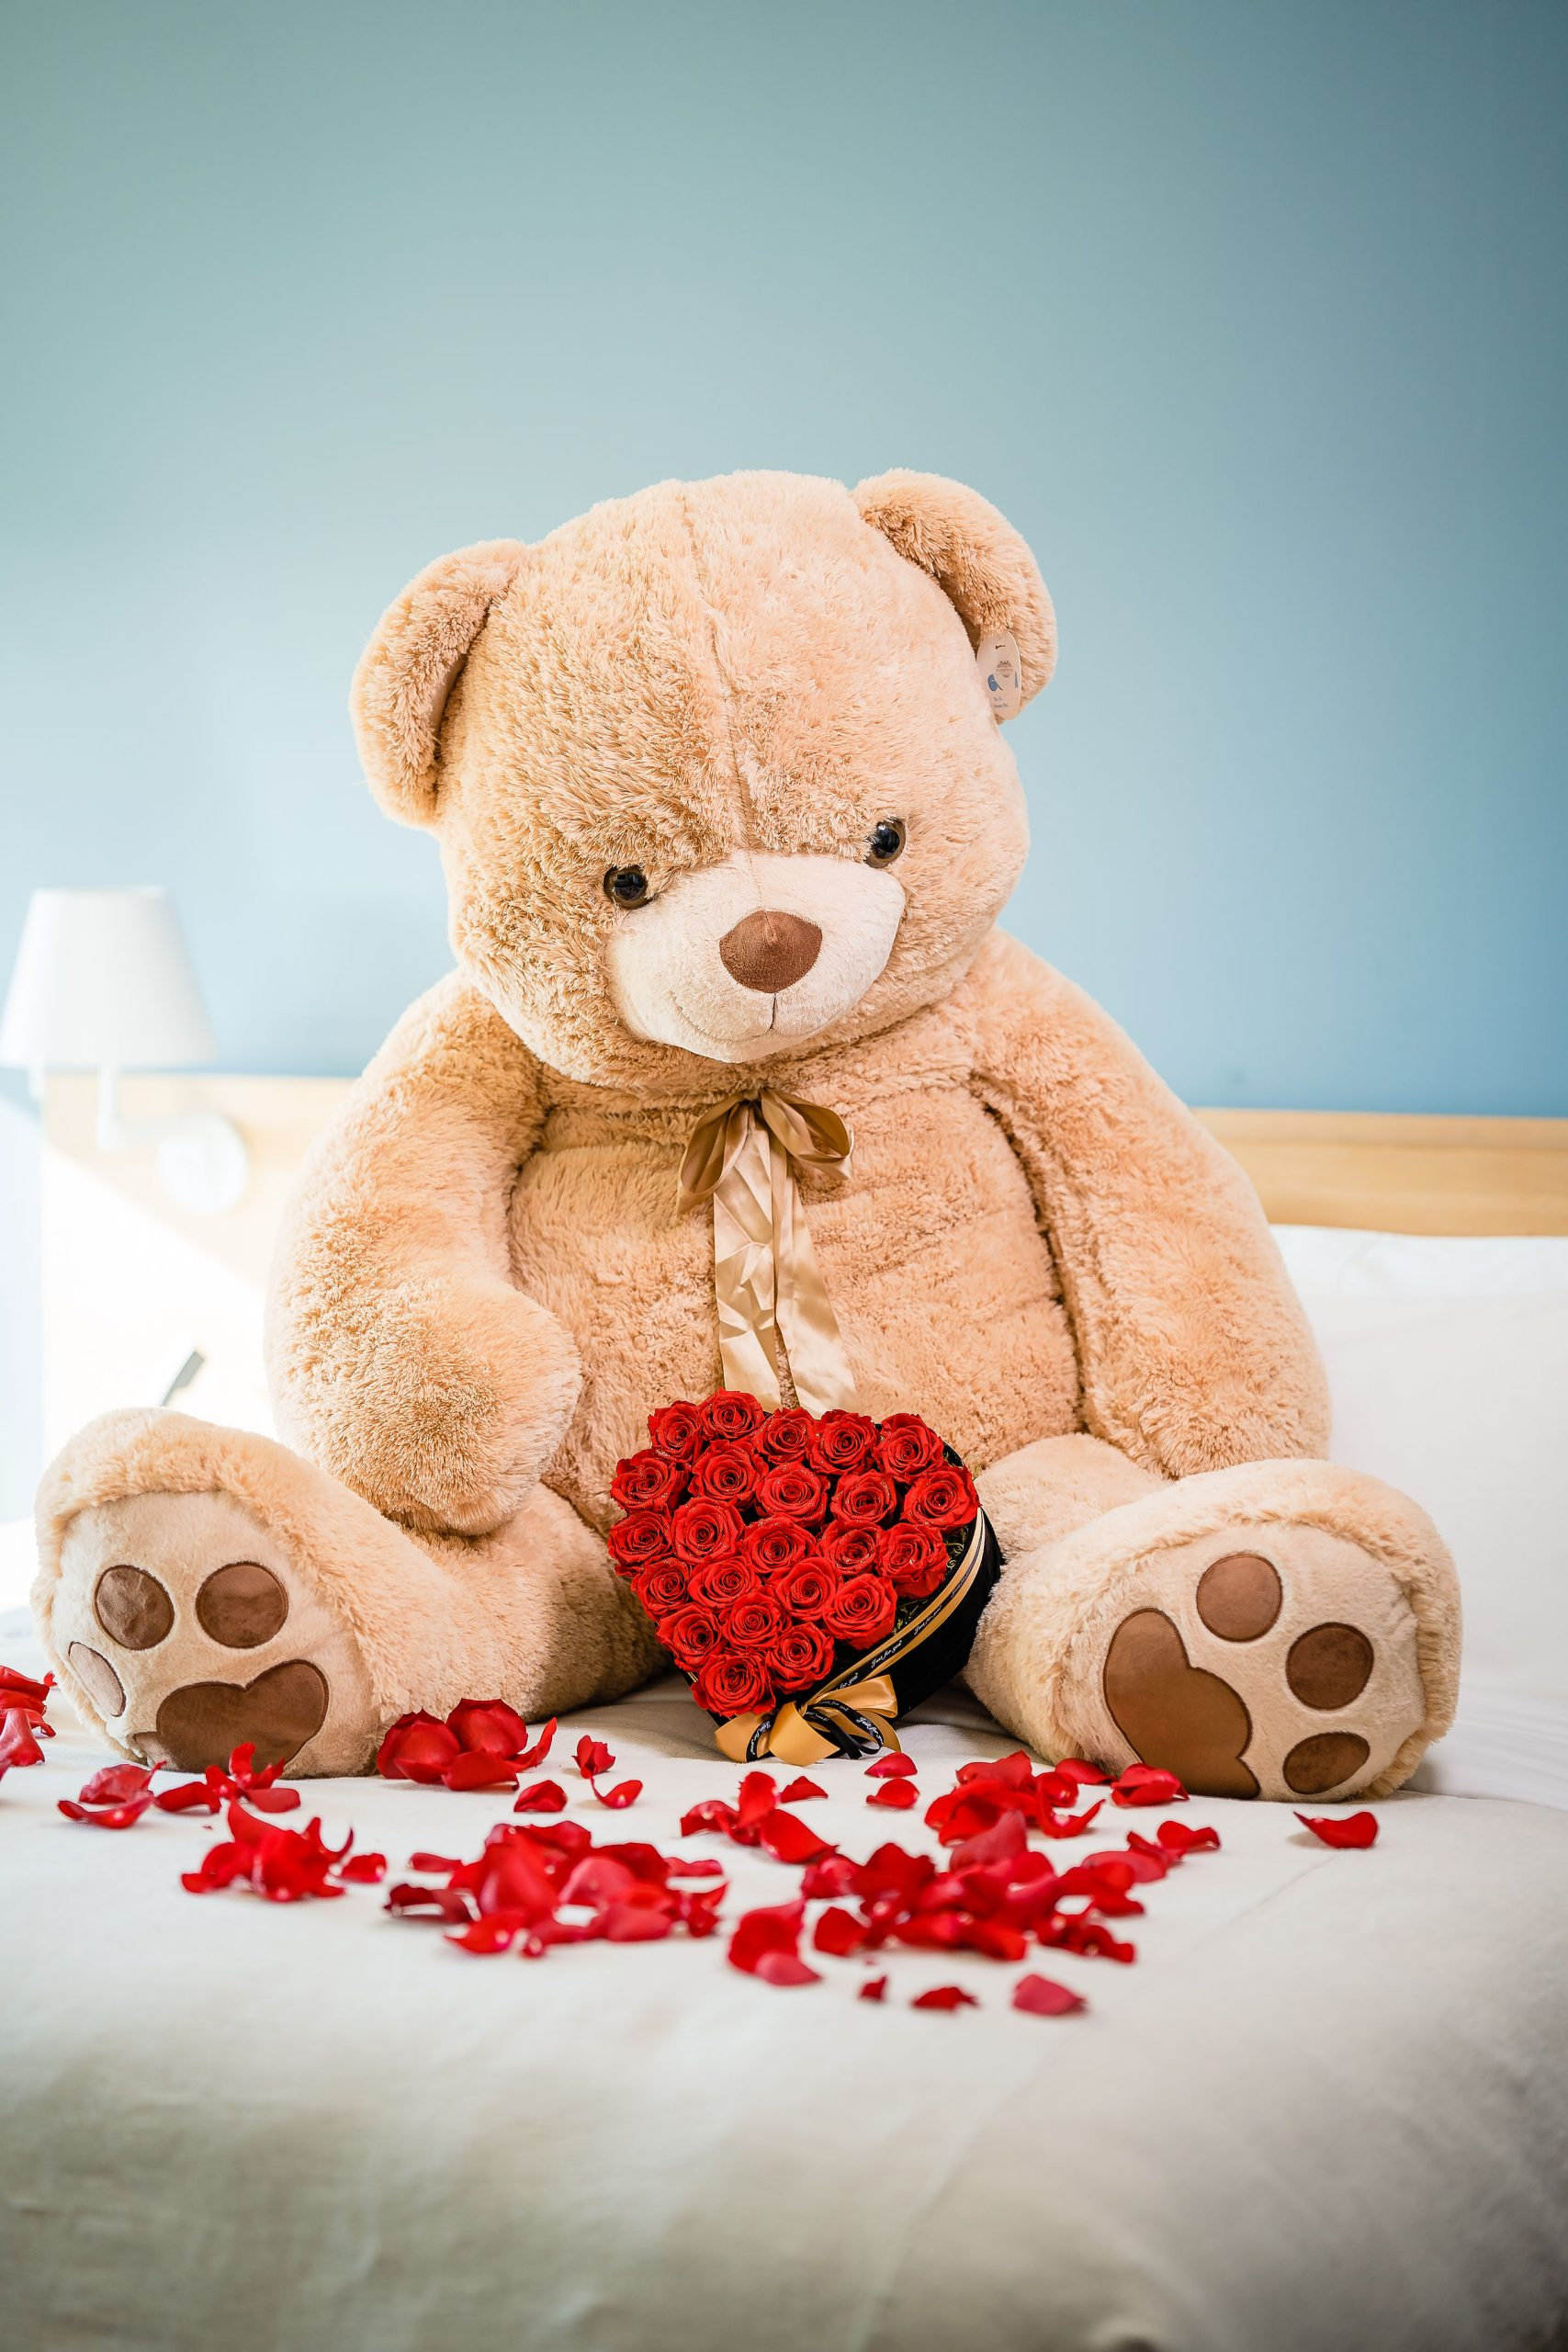 Cute teddy bear with roses styled flower boutique shoot